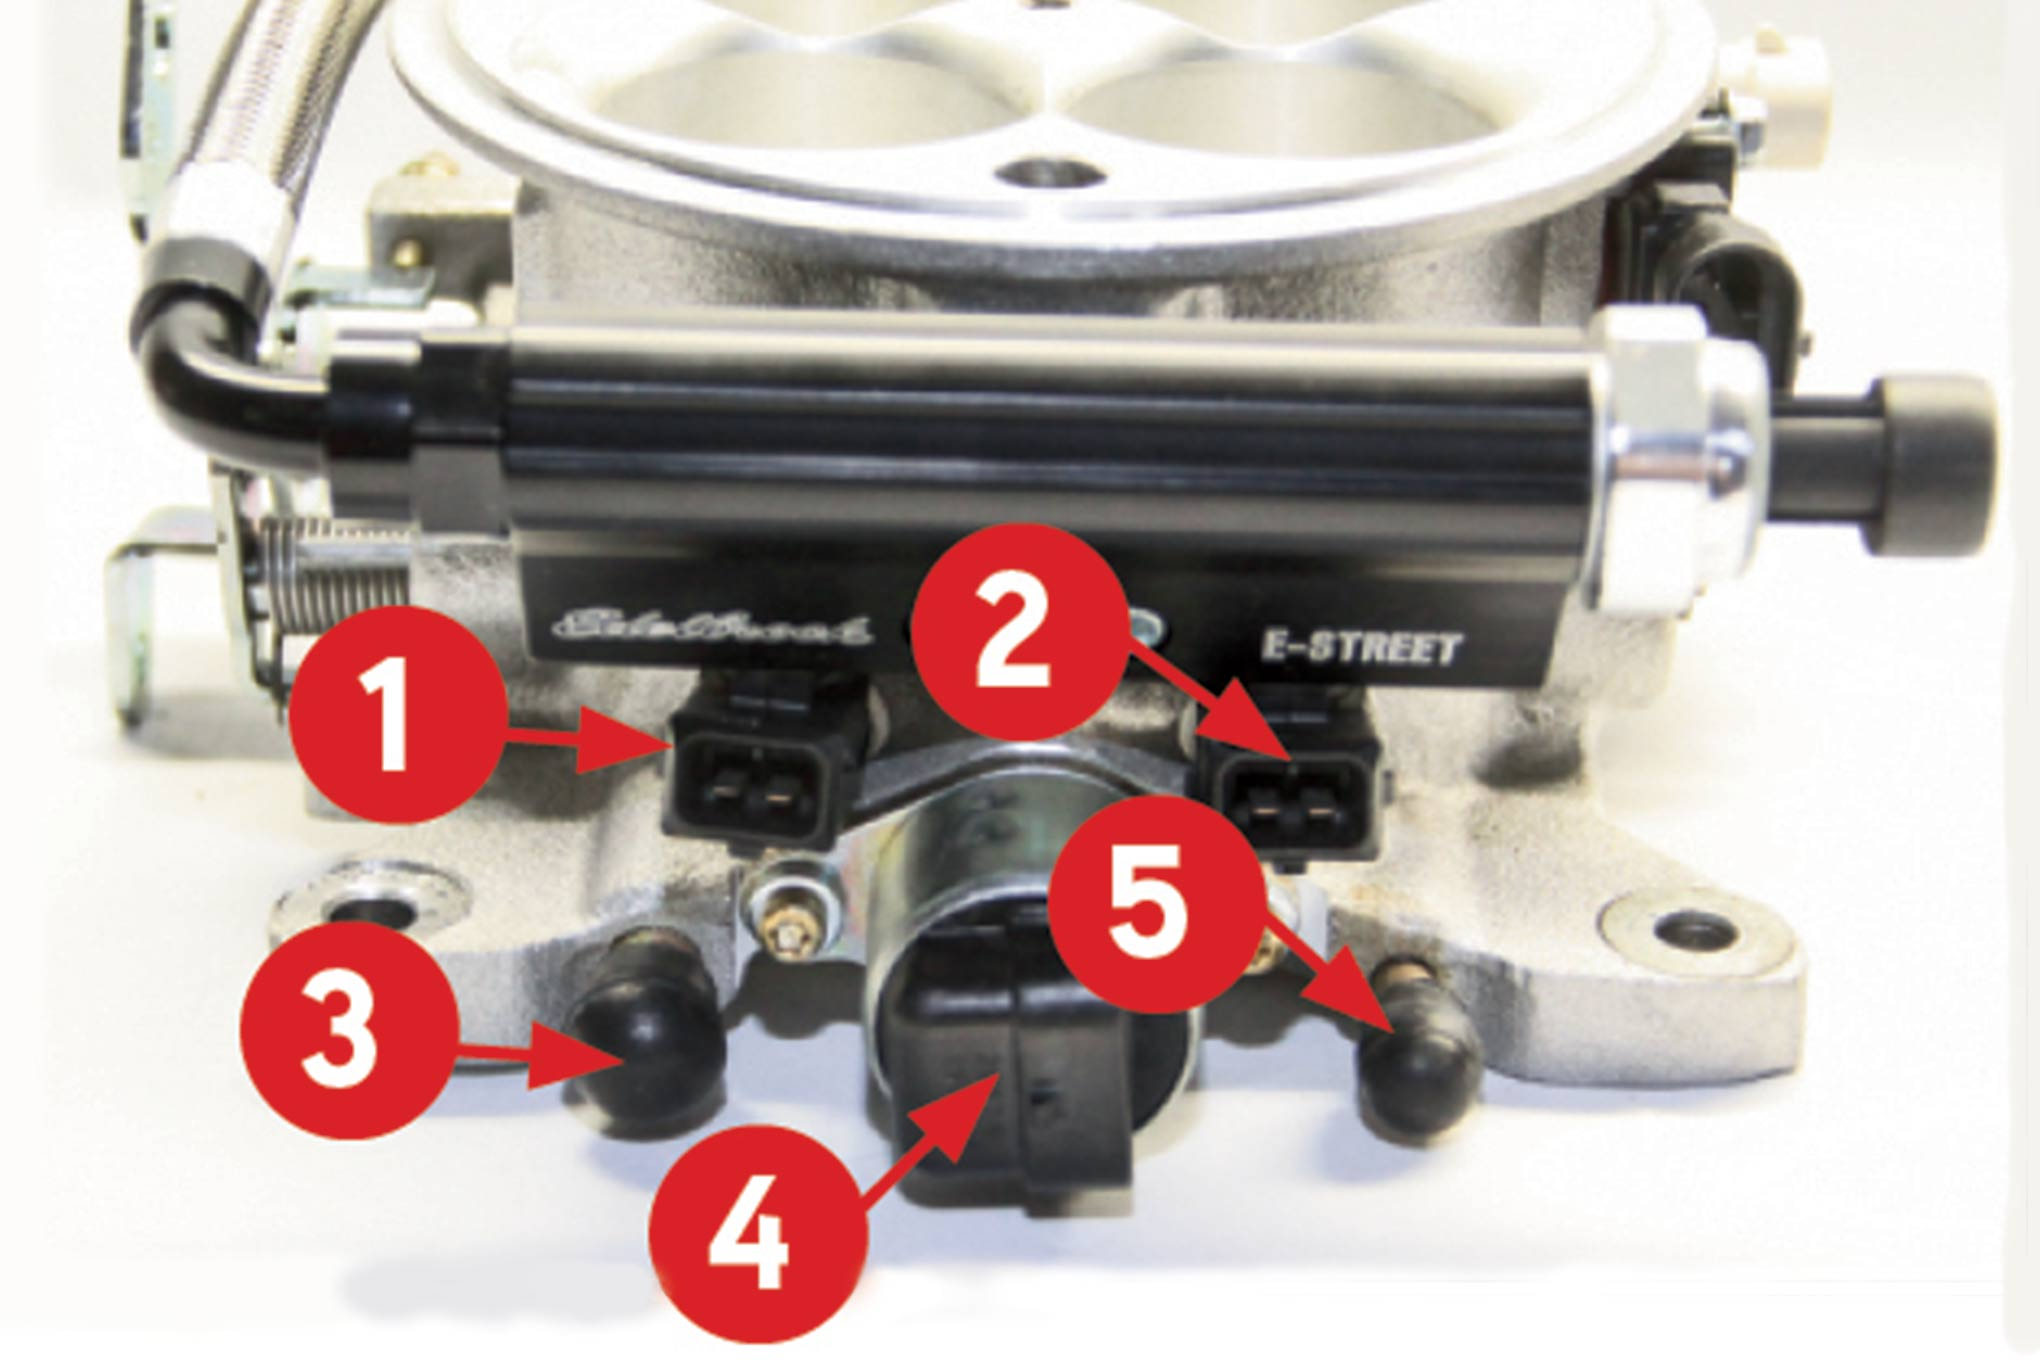 The rear of the throttle body has a pair of injectors (1 and 2), power brake port (3), idle air control valve (4), automatic trans vacuum port (5).